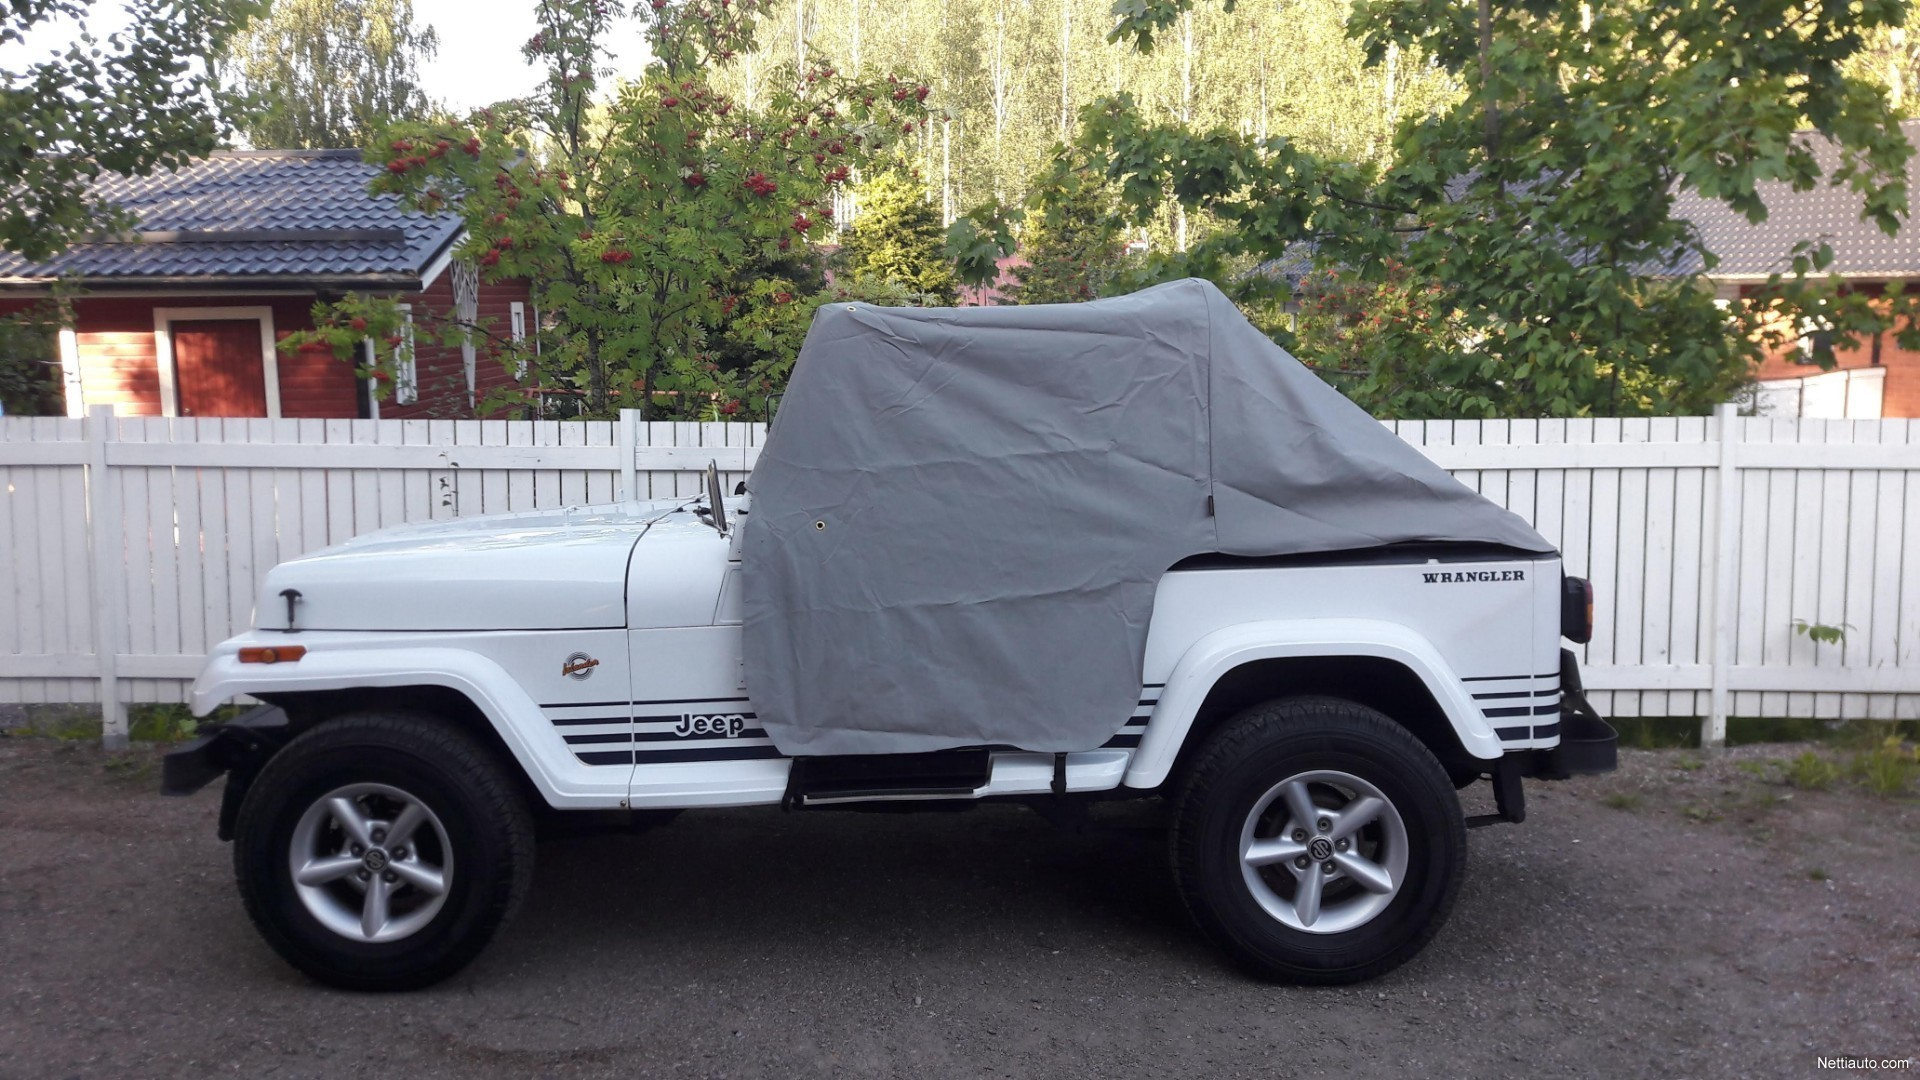 Jeep Wrangler Rims And Tire Packages >> Jeep Wrangler Islander 4 2 Automaatti Avoauto 1991